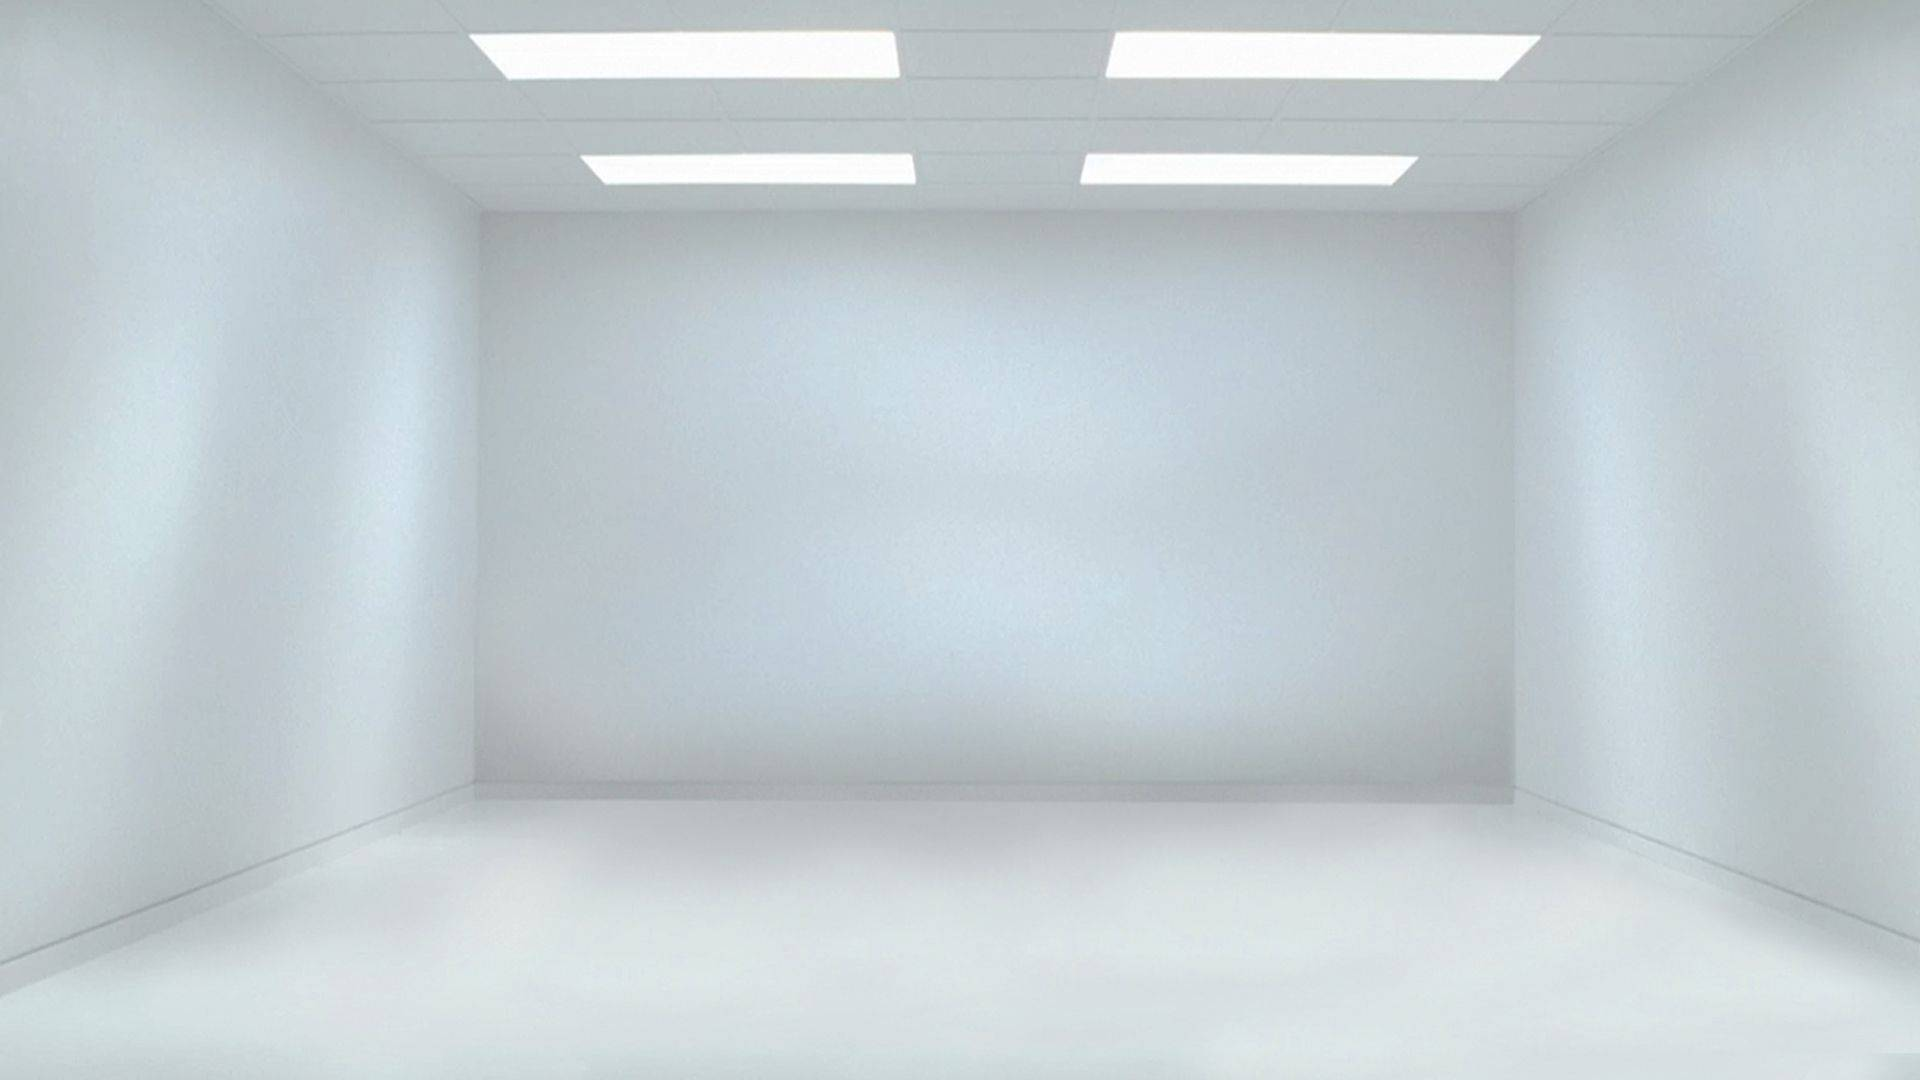 All White Room Unique when I See something Blank Like This Room My Mind Fills with